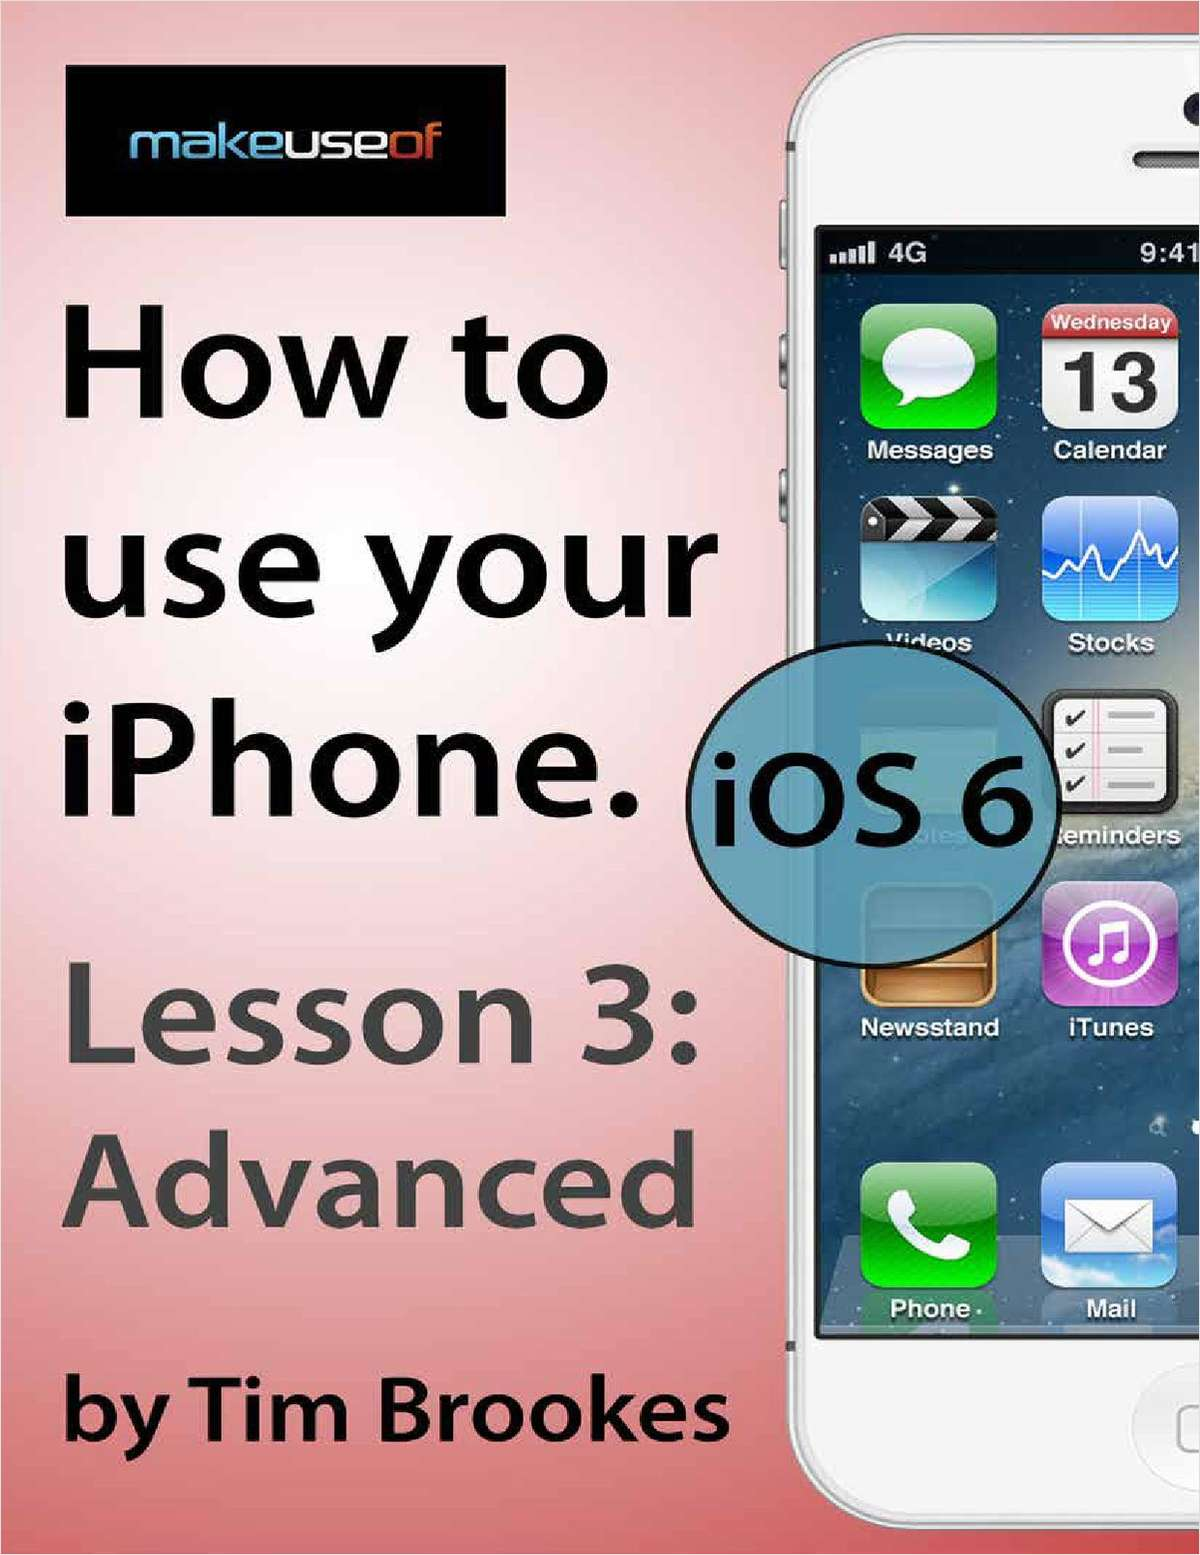 How To Use Your iPhone iOS6: Lesson 3 Advanced